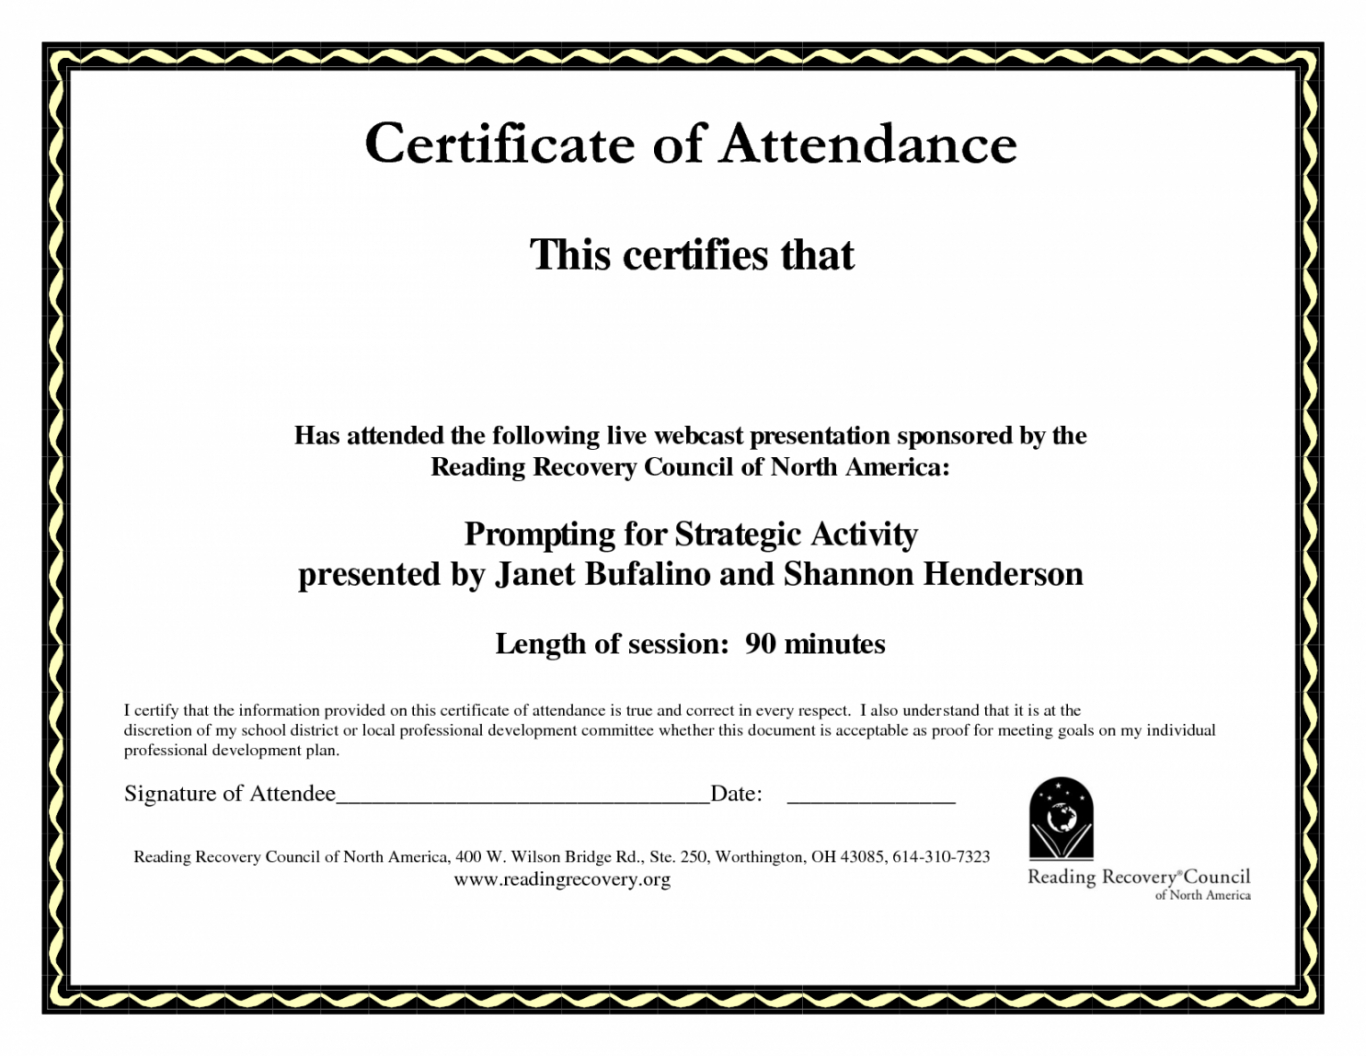 Stupendous Perfect Attendance Certificate Printable | Dora's Within Perfect Attendance Certificate Template